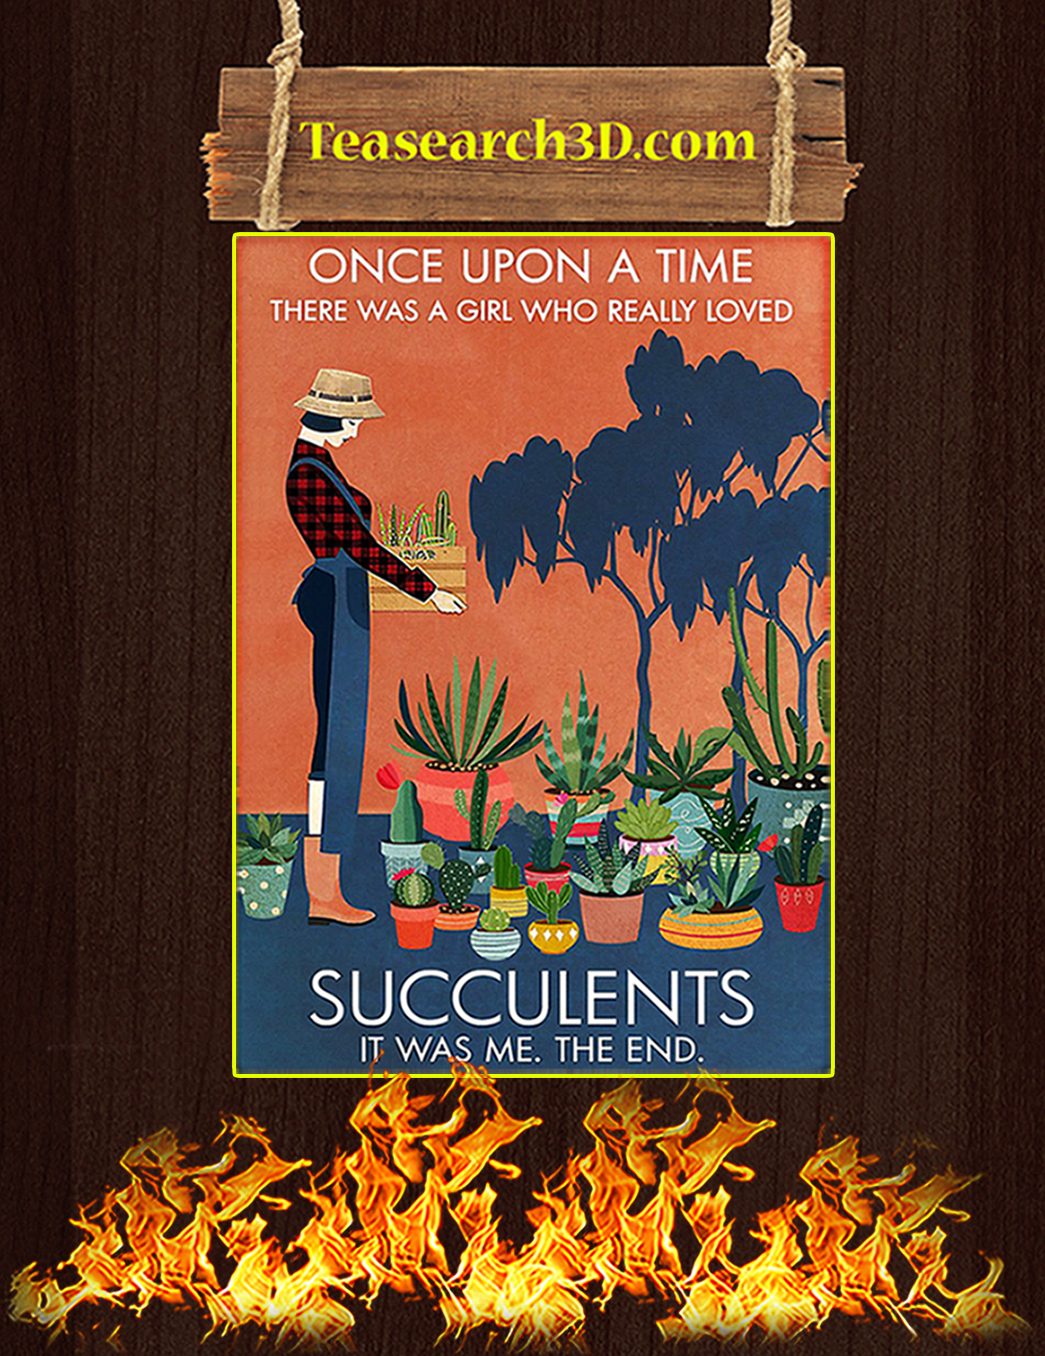 Once upon a time there was a girl loved succulents poster A1